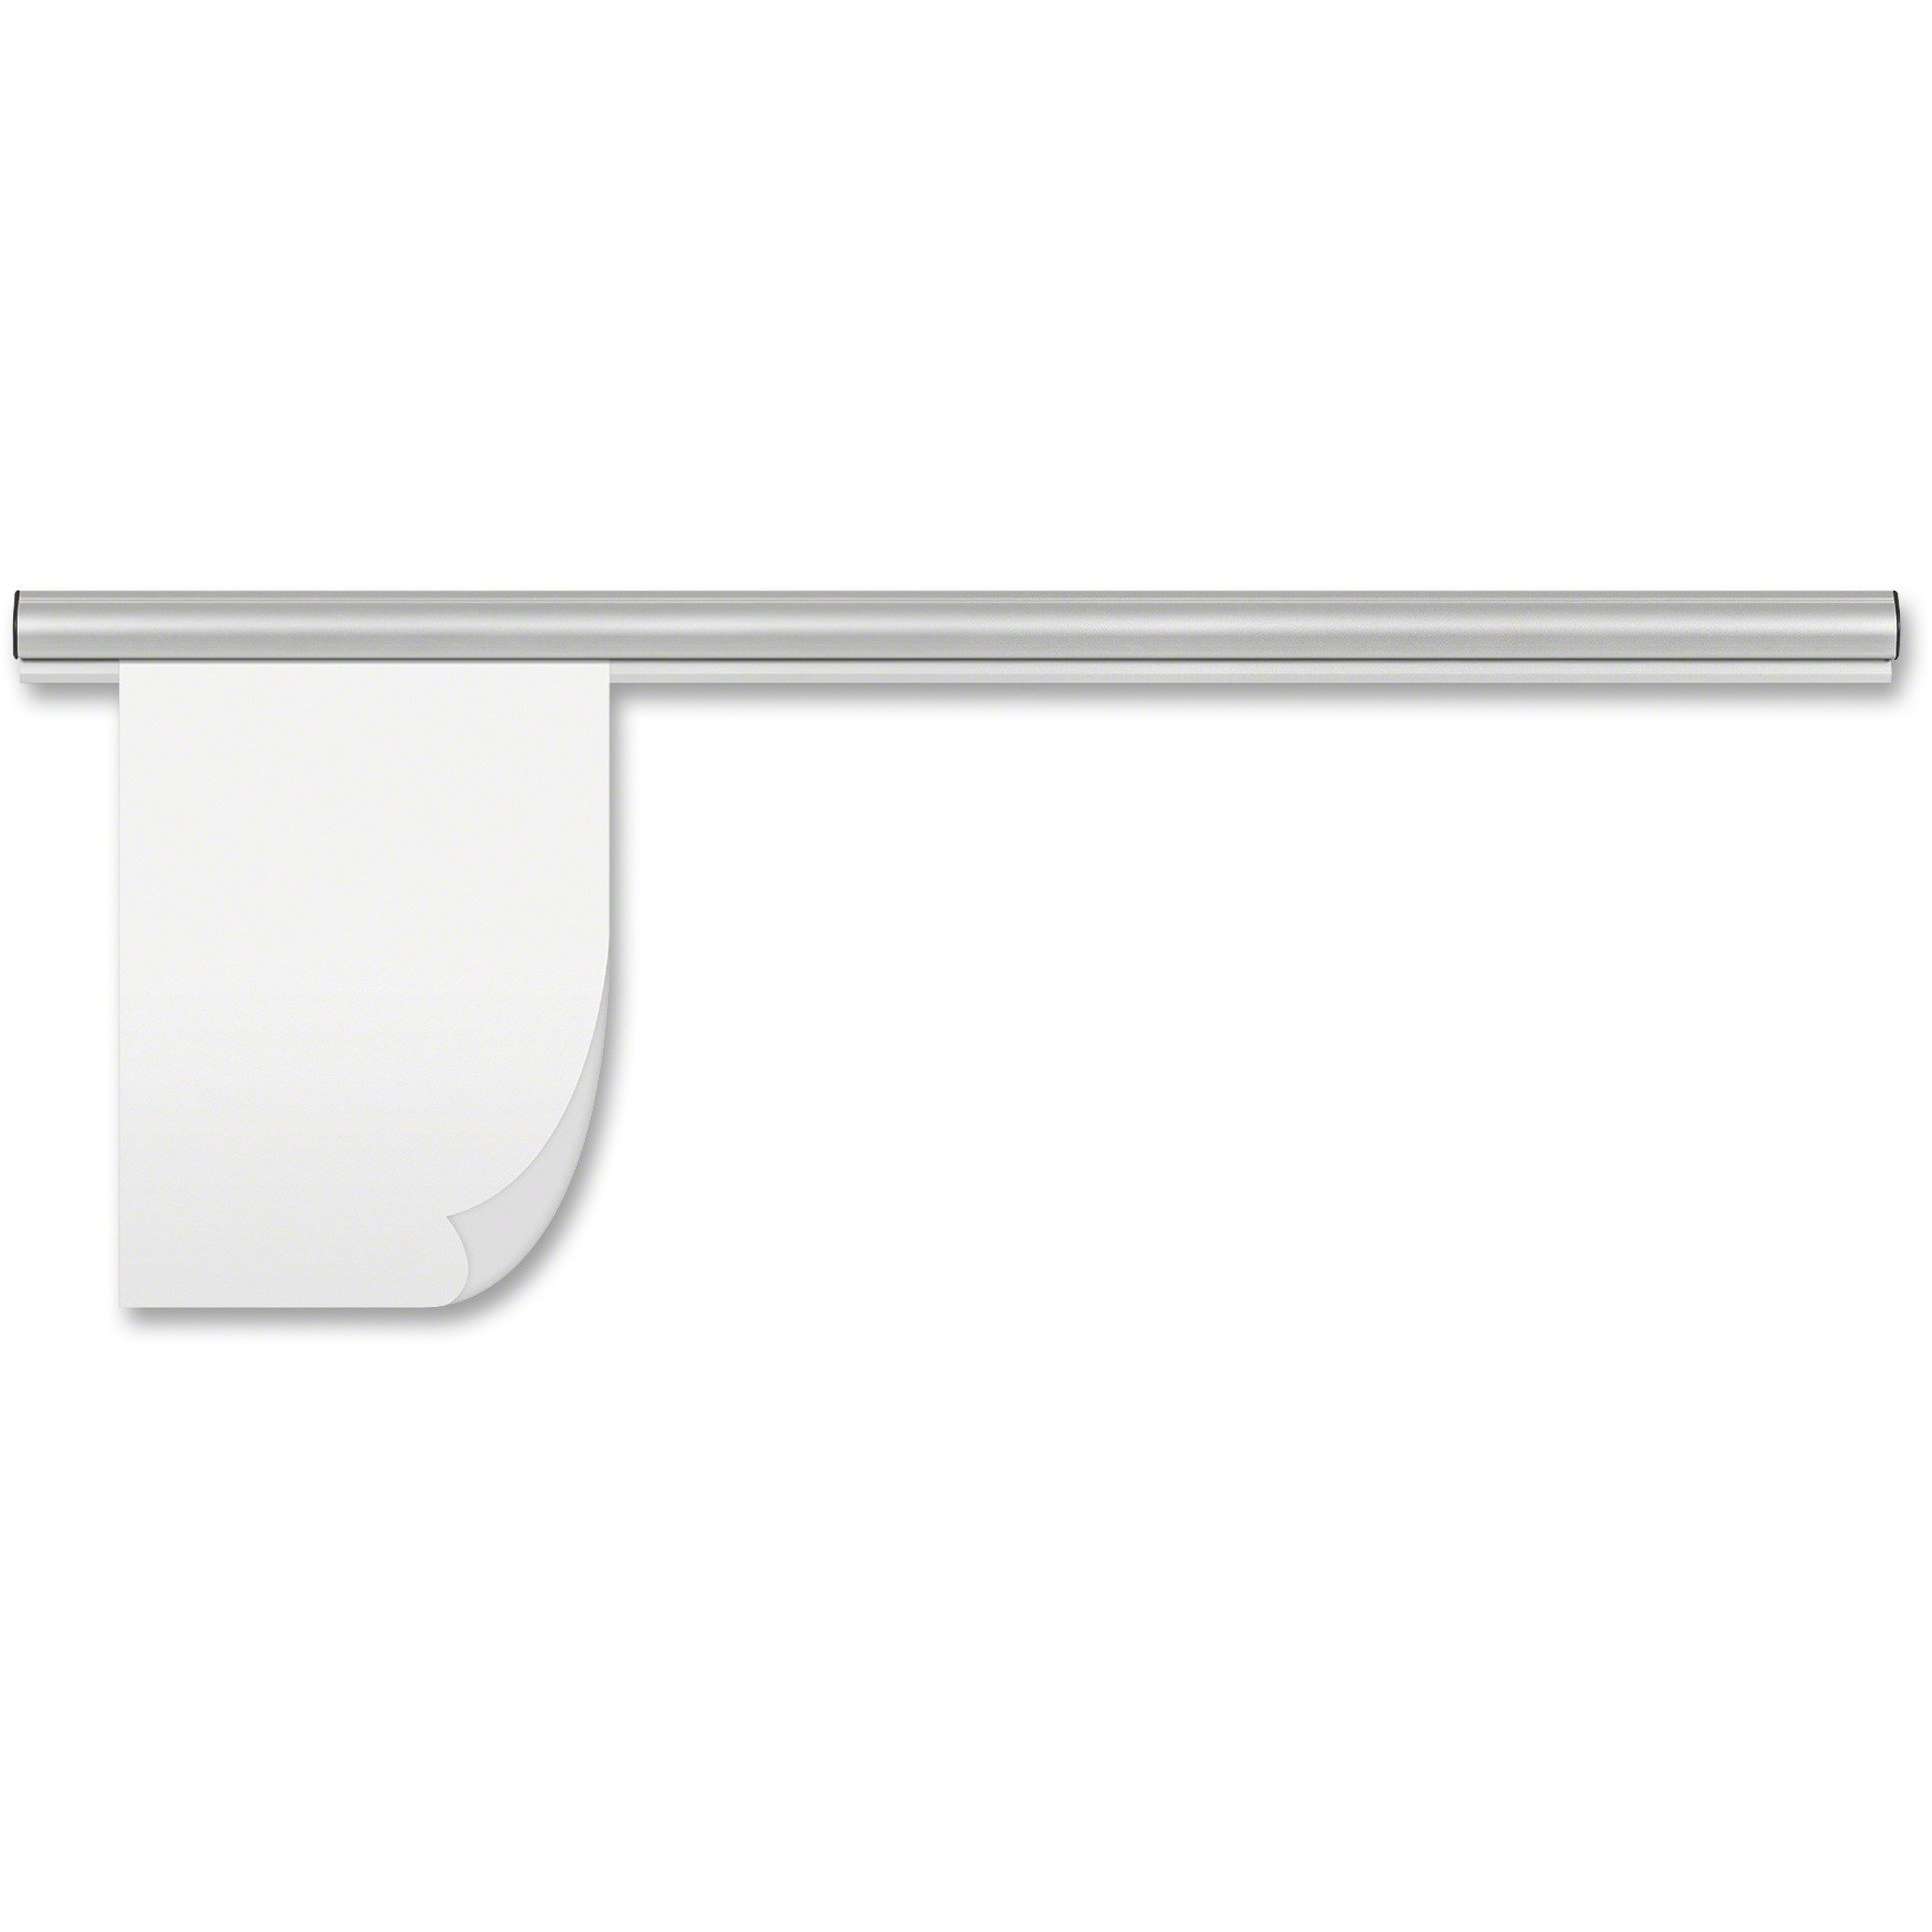 Balt Best-Bite Tackless Paper Holder, 24 Inch Length, Silver (BLT505S2)